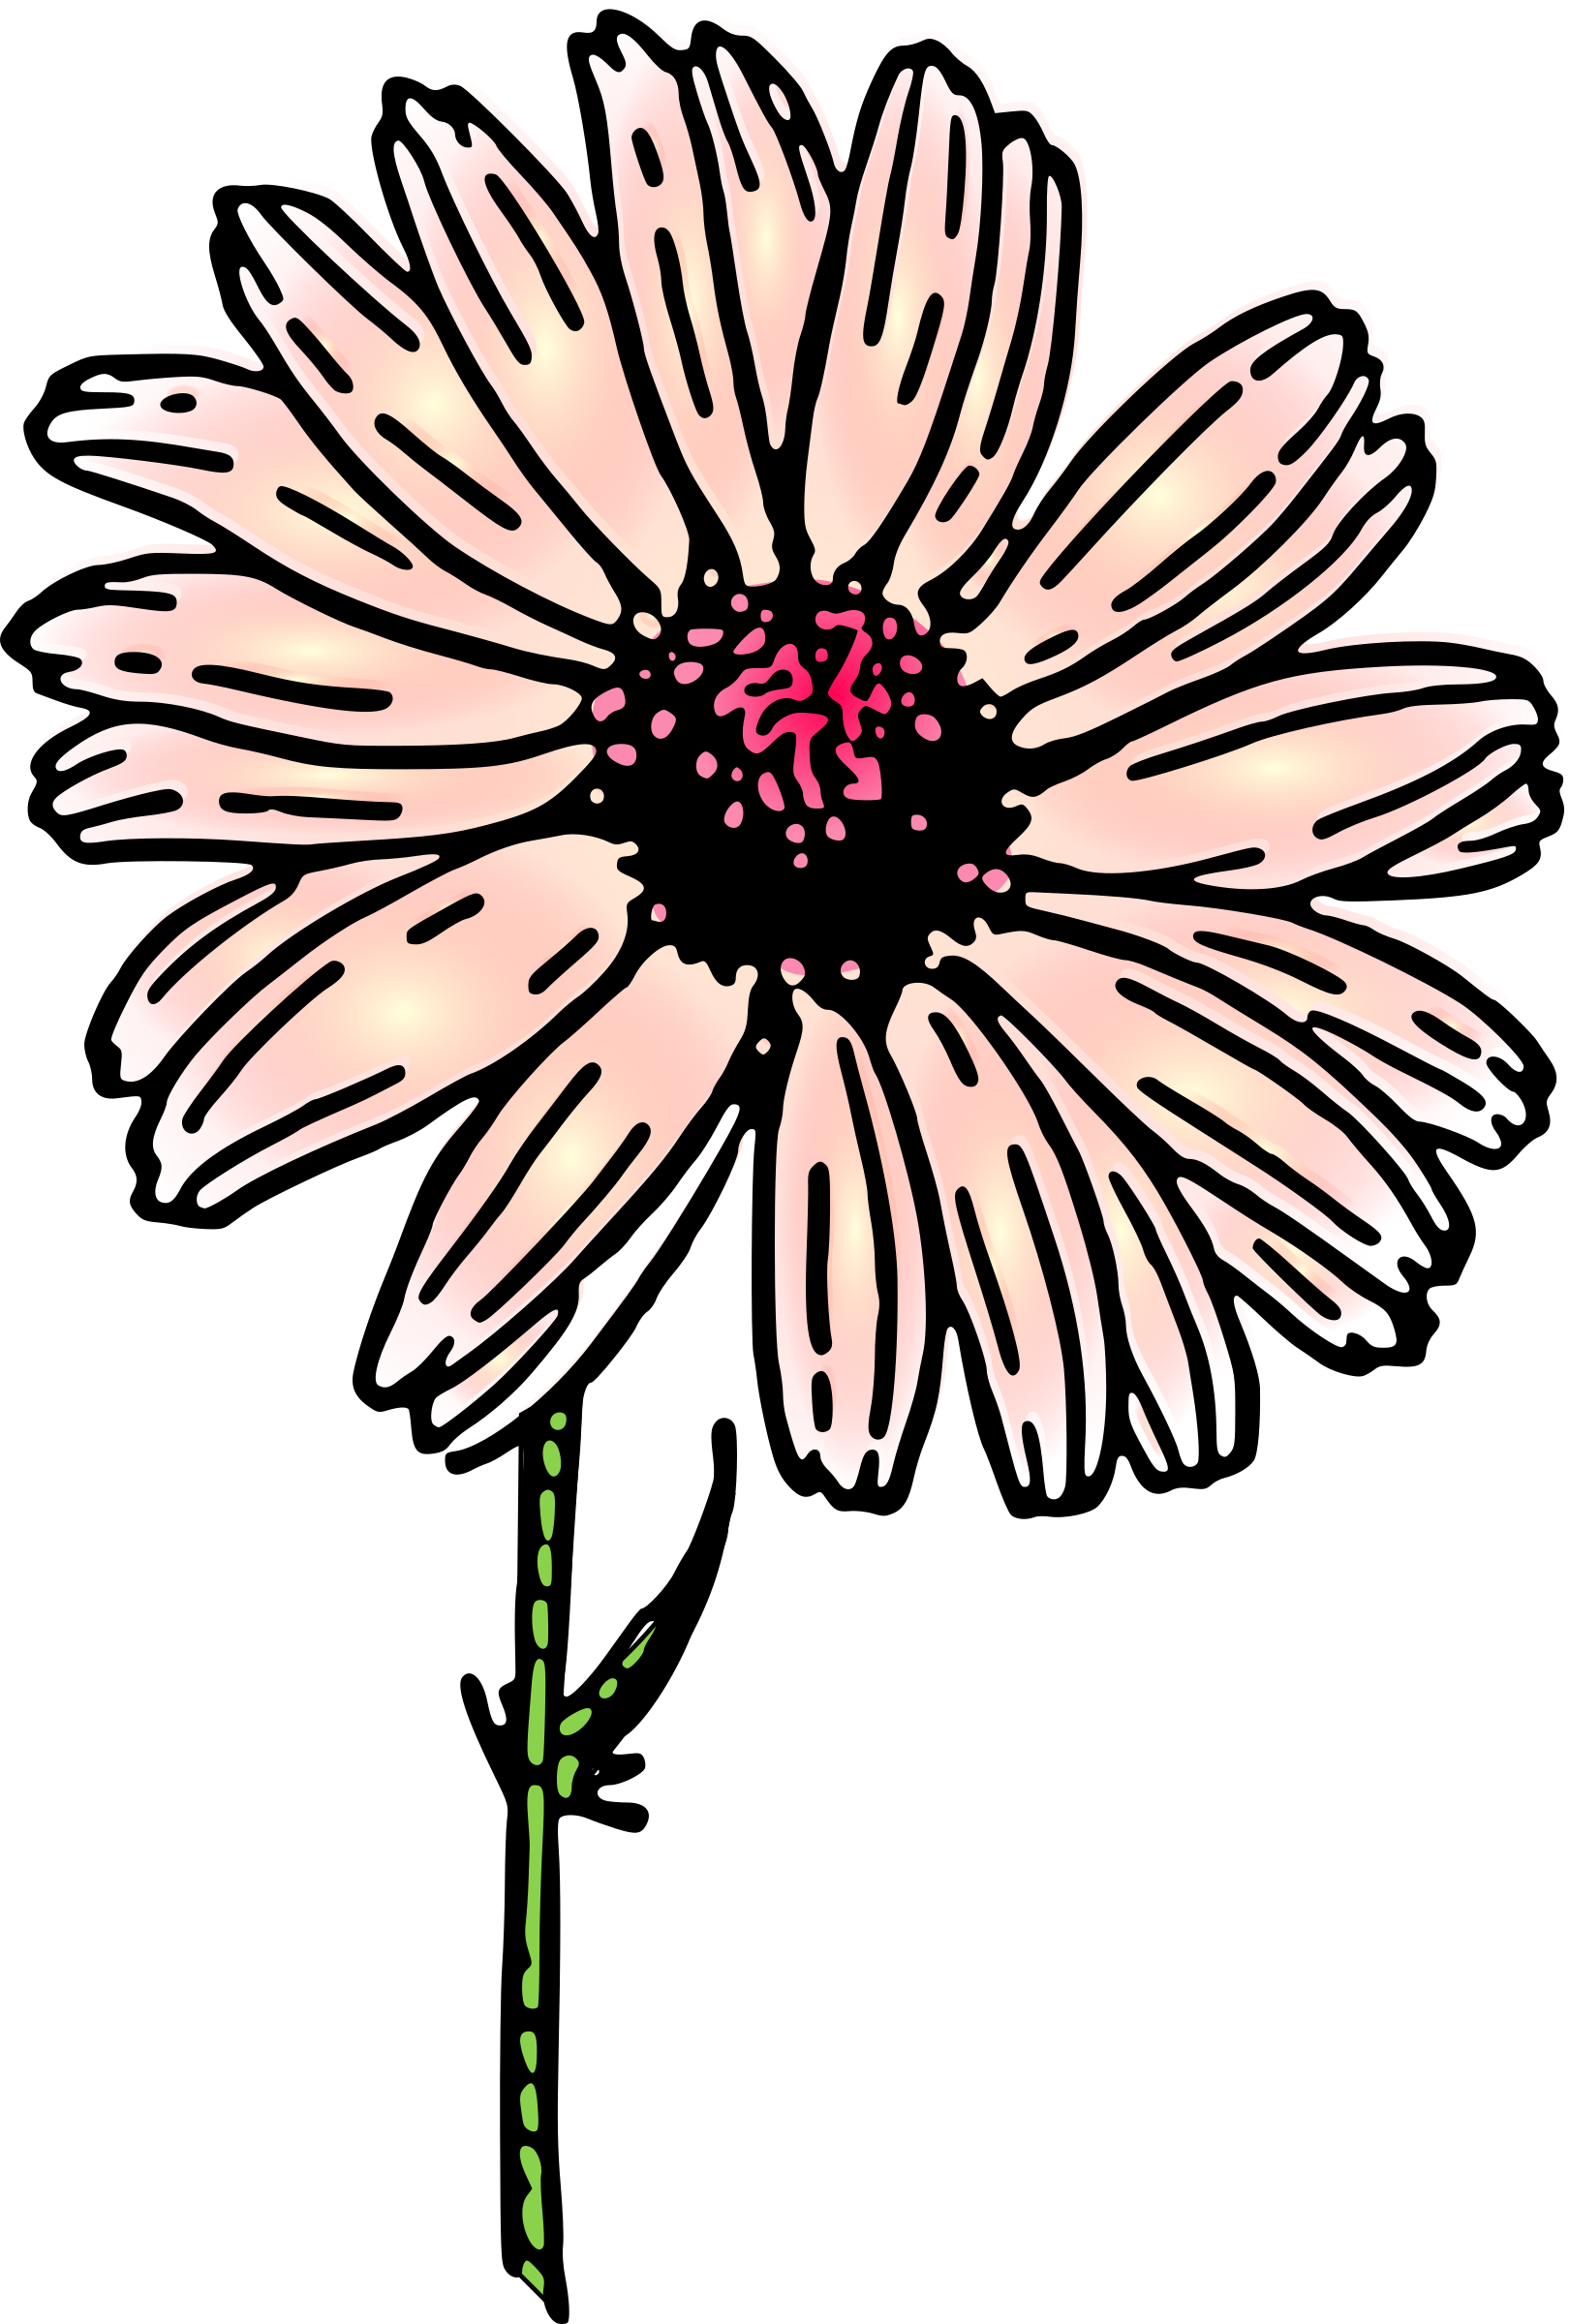 colored daisy 2 by pitr